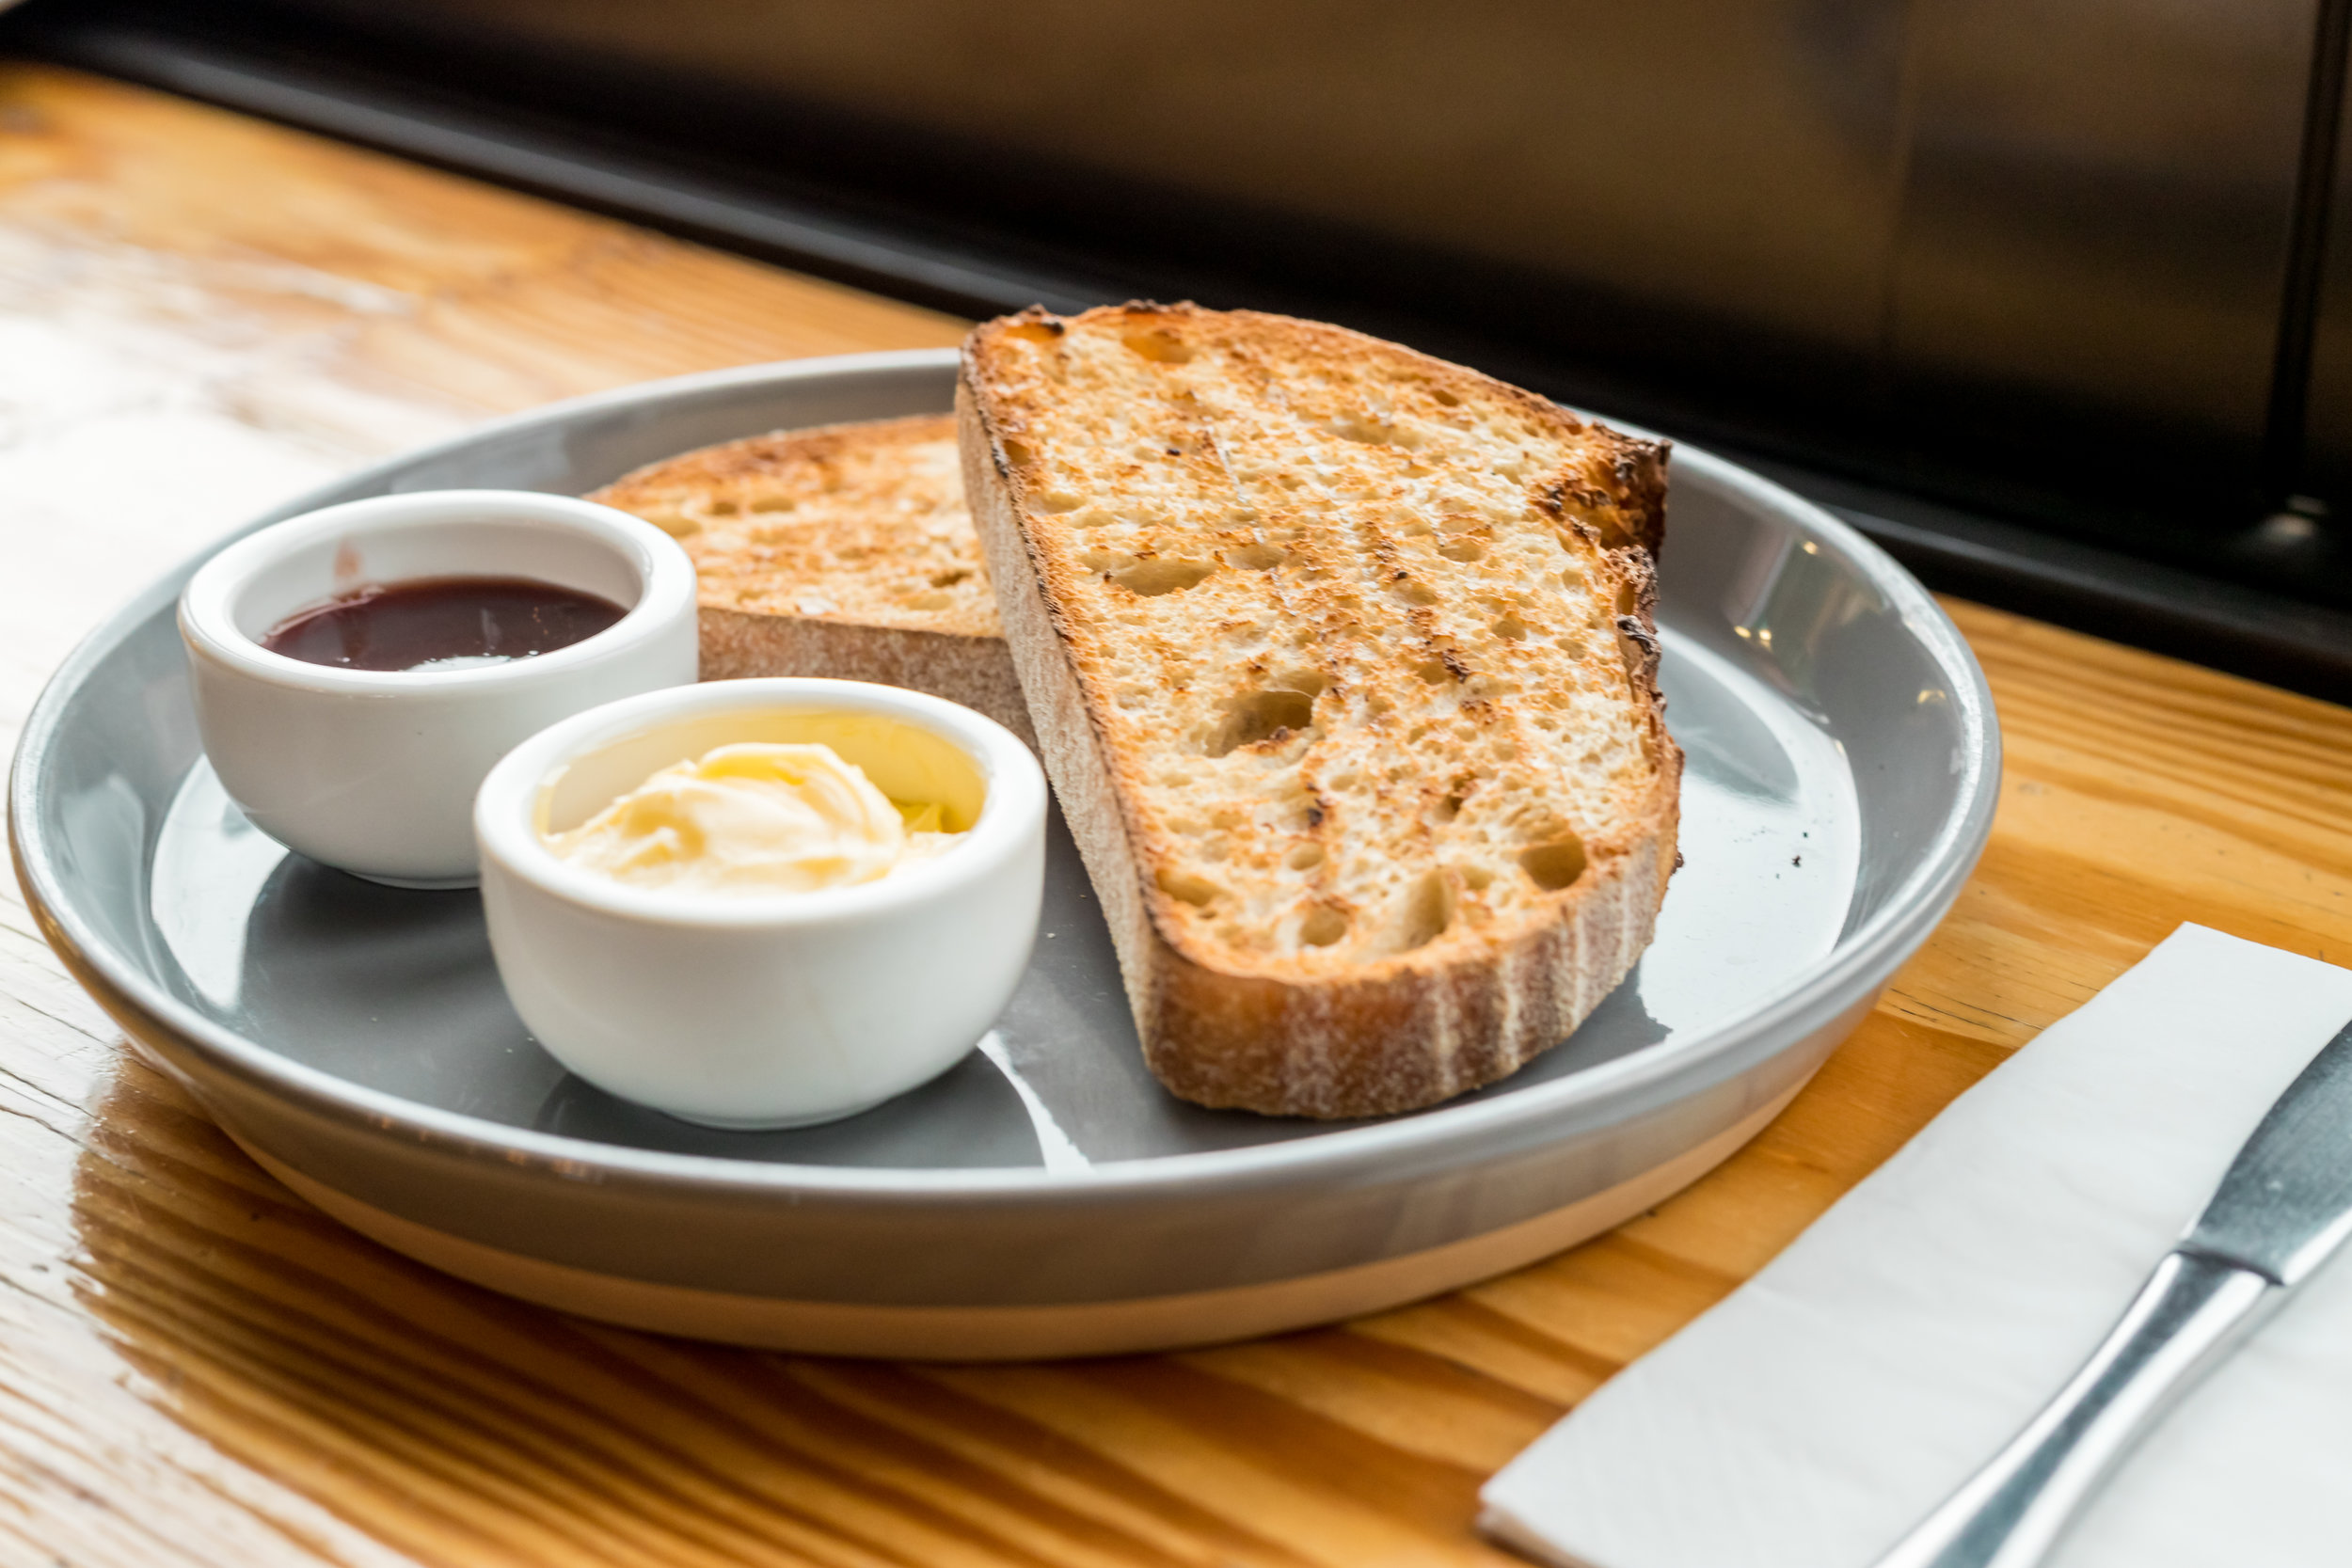 TOAST $8 - Bicycle Baker Sourdough w. housemade jam, marmalade or local honeyGFO